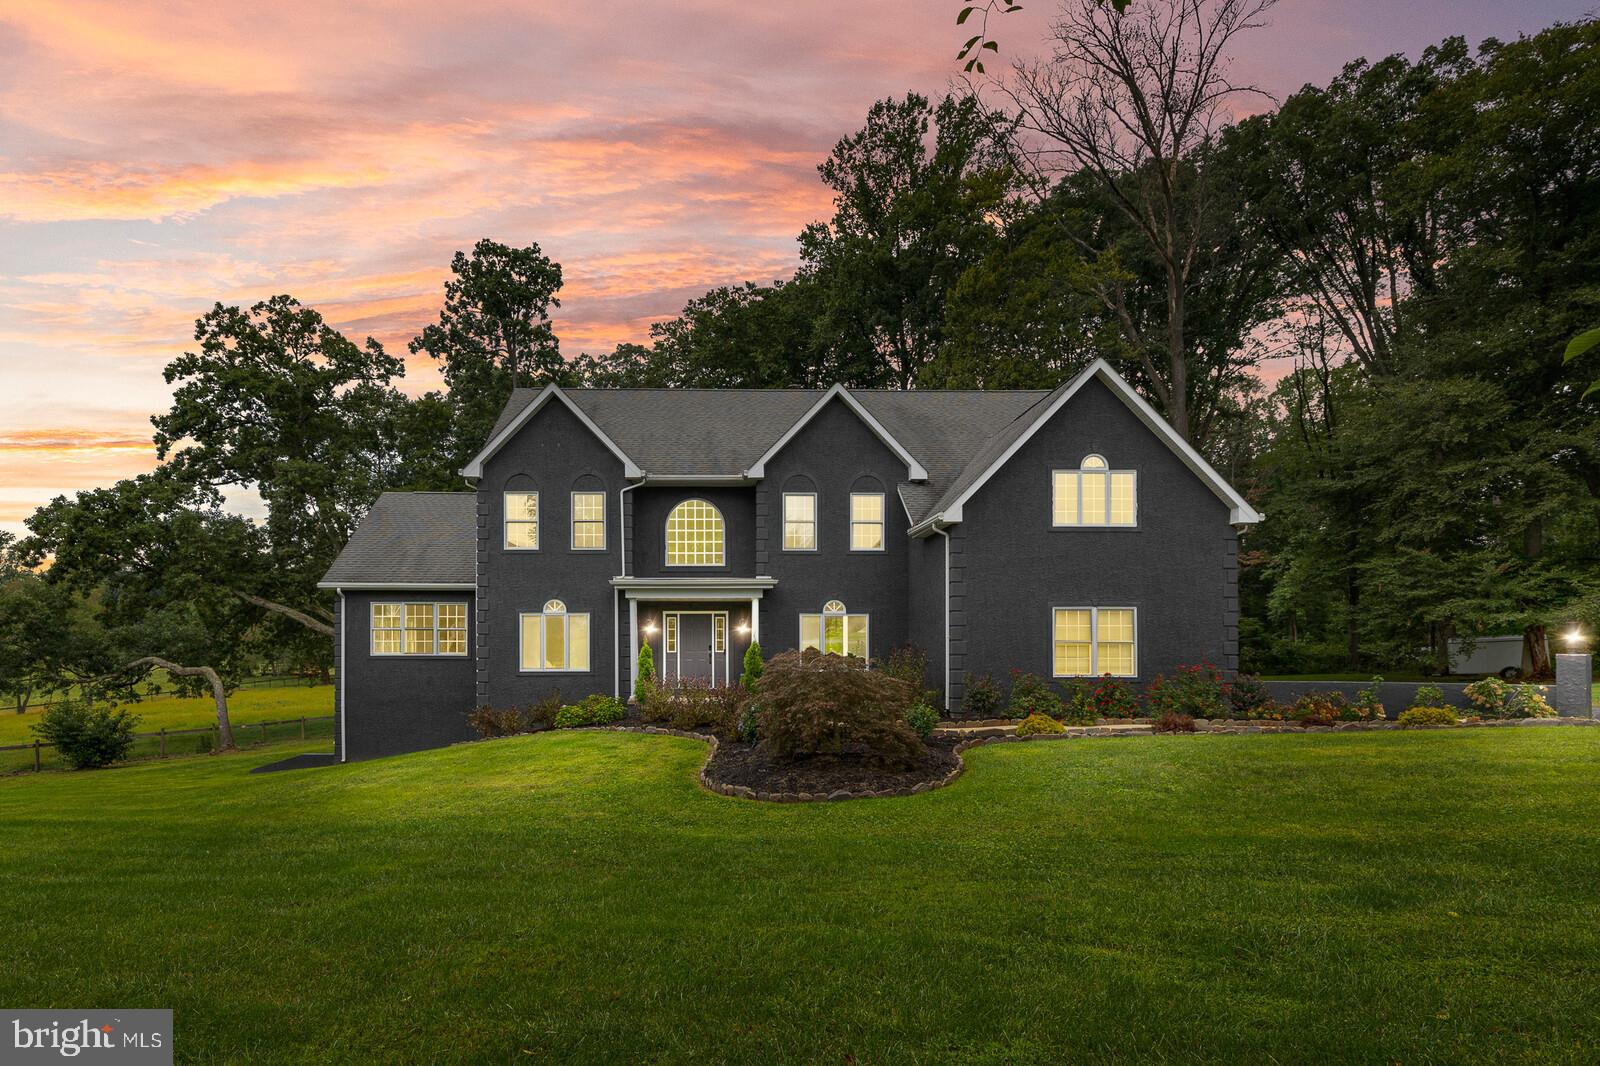 Watch the sunset every night over the rolling hills from the back deck of this uniquely designed custom home.  This home has been renovated from top to bottom with dark tones, hand selected finishes, a two story custom double sided fireplace, along with TV's included. Voice activated recessed lights are installed throughout the home to be used with Alexa.  The main level has a beautiful sunroom that opens up to the deck with lots of natural light flowing through.  The sitting area in the kitchen is perfect for coffee in the morning while you relax in front of 60+ acres of farmland and preserved land. The Owner's suite has vaulted ceilings and an extra large bathroom with a jacuzzi tub, two vanities, a stand up double headed shower, and four walk-in closets.  There are two laundry rooms with one next to the Owner's suite and one in the basement.